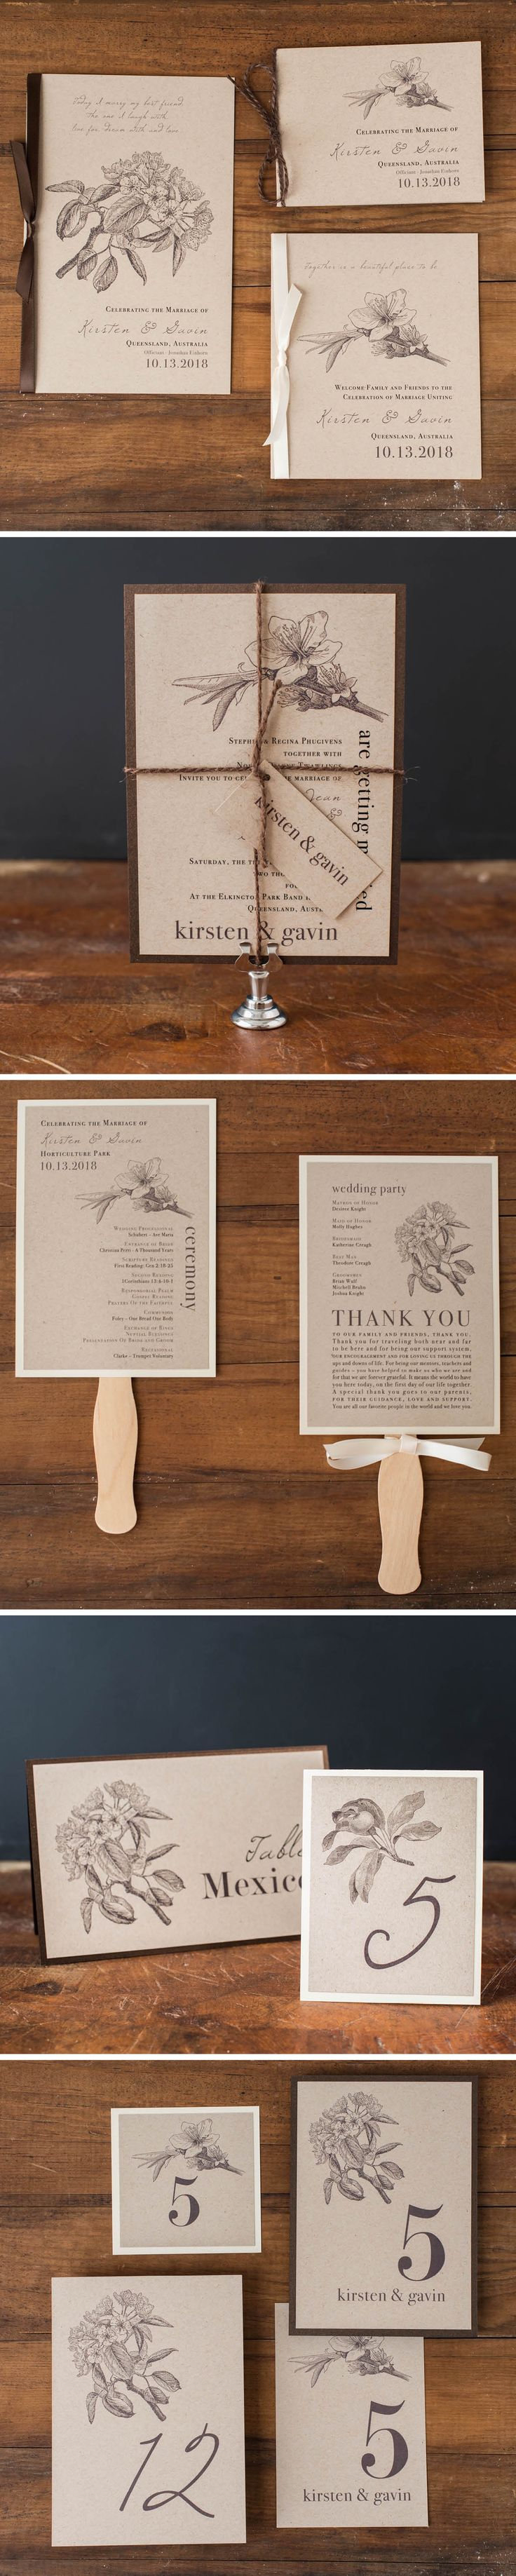 From rustic ceremony fans to the complete invitation set, these Rustic Magnolia stationery pieces will perfectly complement your rustic romantic wedding. View all matching pieces at www.beaconln.com.